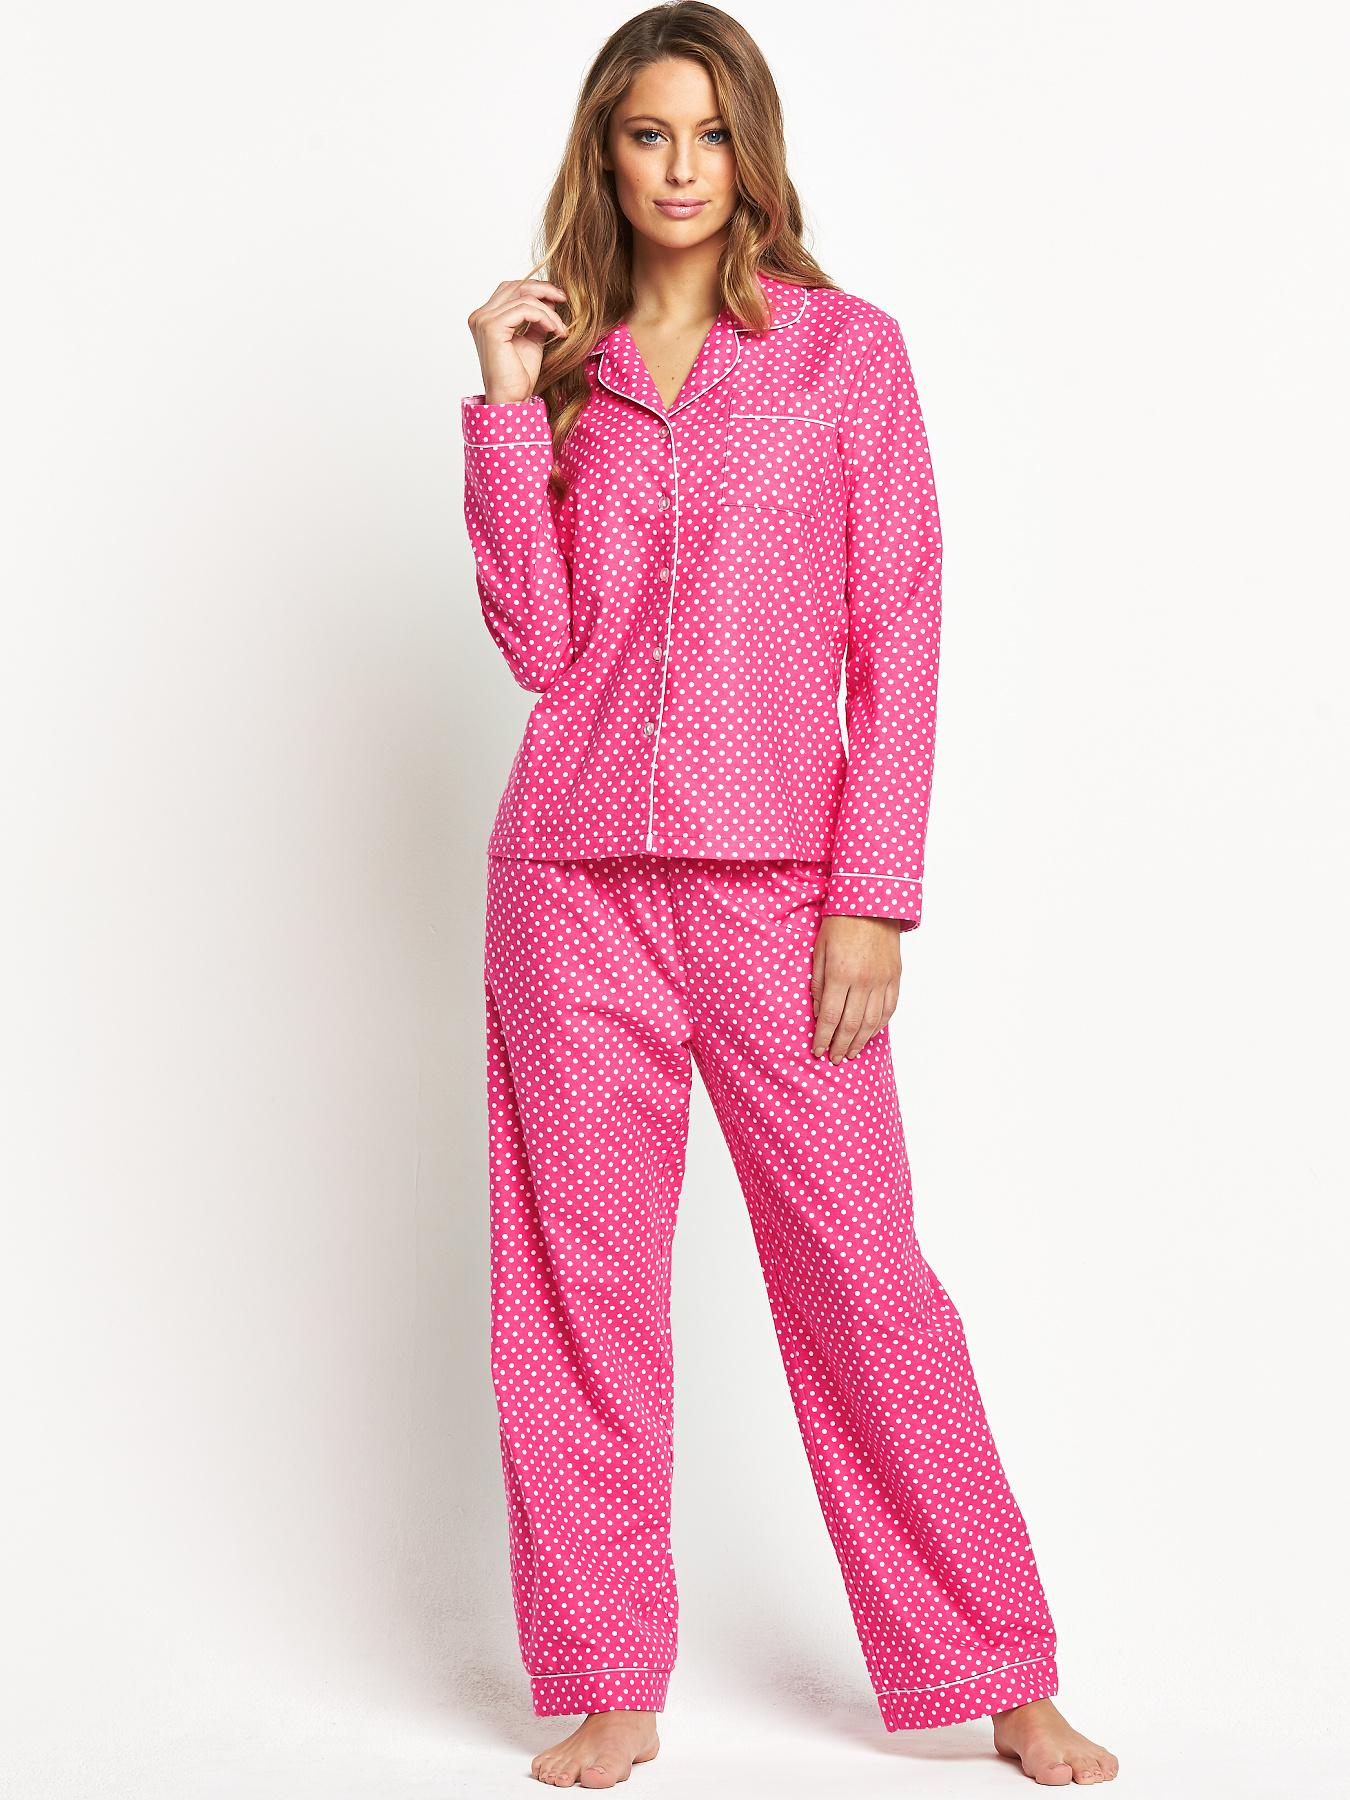 Join the hangover club in our new collection of women's nightwear. Get cosy and click to shop everything from satin pyjamas to novelty slippers.